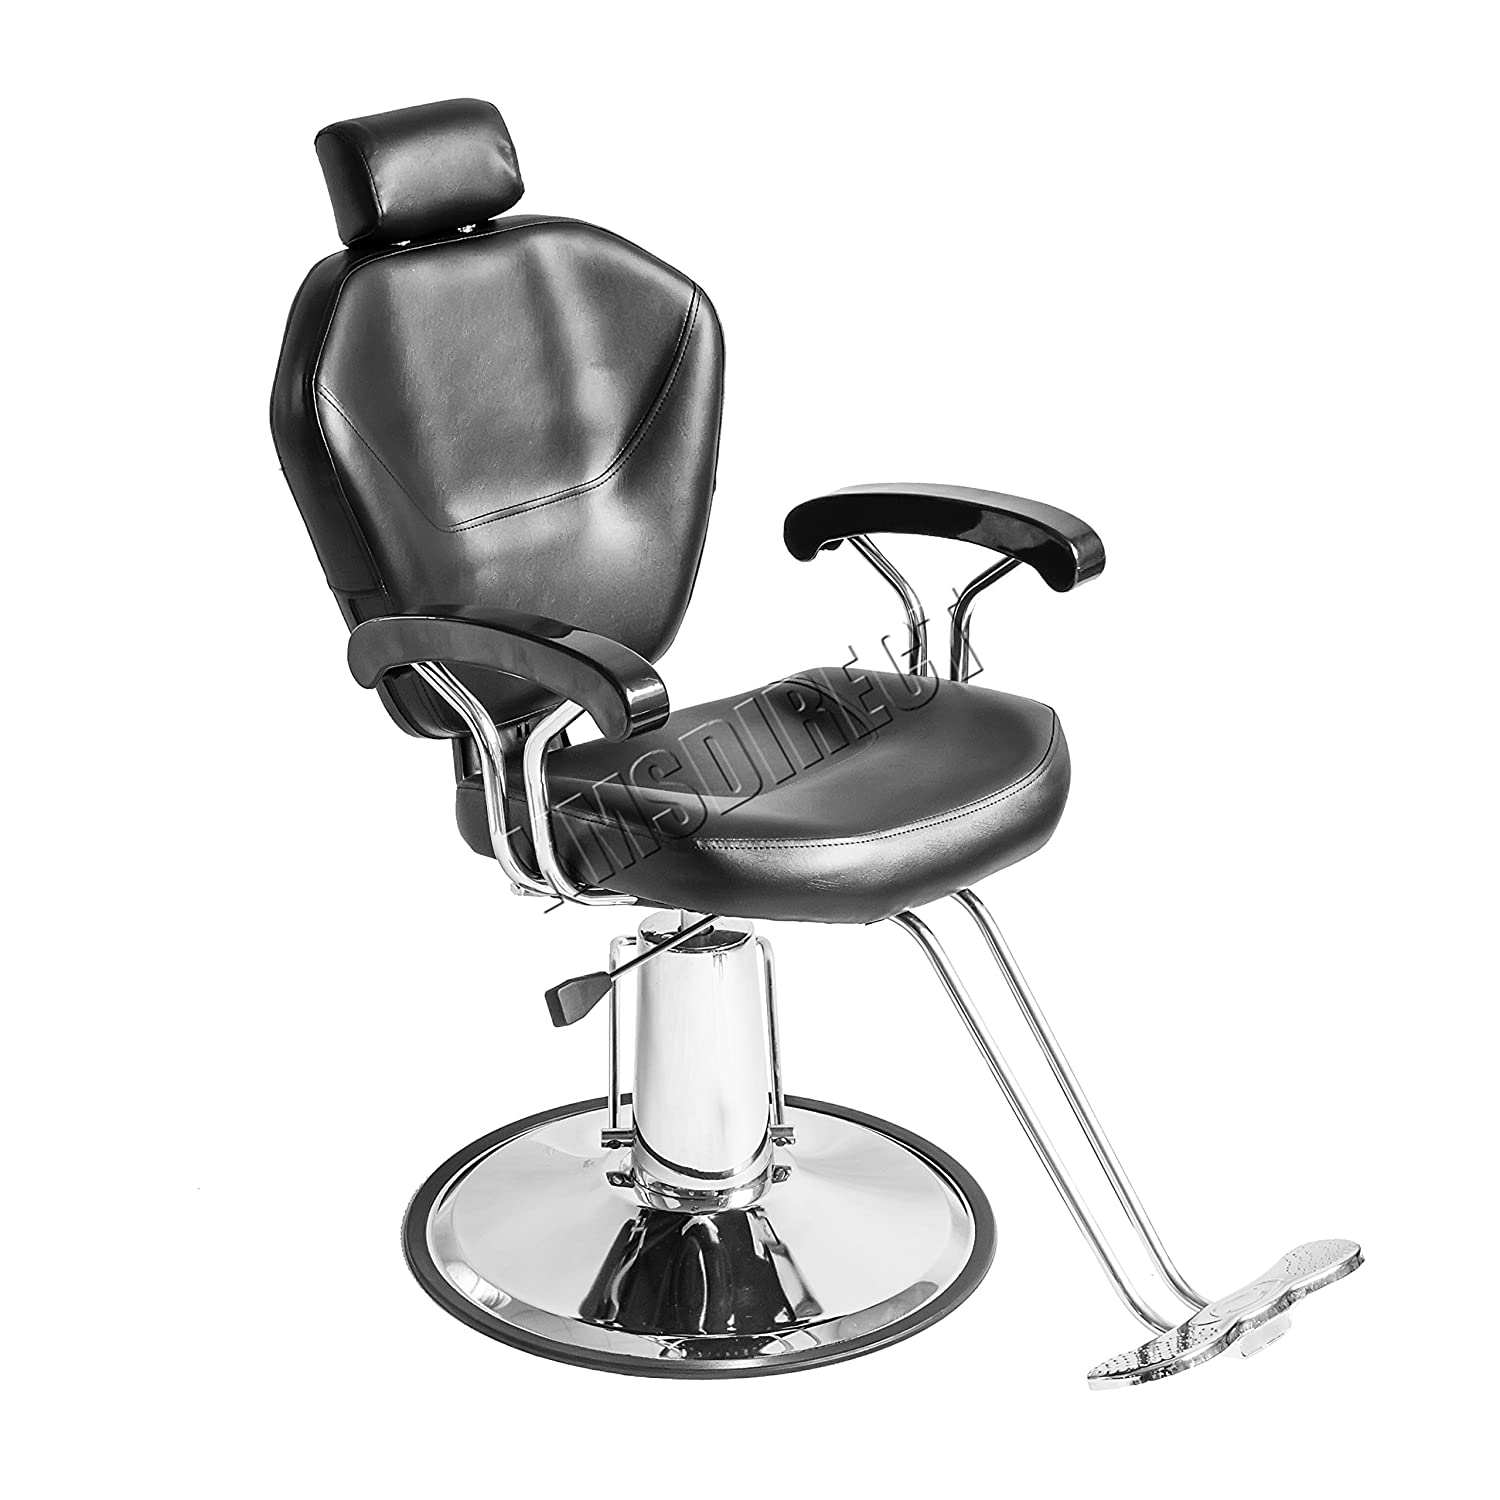 FoxHunter Salon Barber Chair Professional Hairdressing Hair Cut Shaving Threading Beauty Tattoo Furniture Equipment Modern Styling Classic Fashion Hydraulic Lift Reclining Adjustable Black KMS